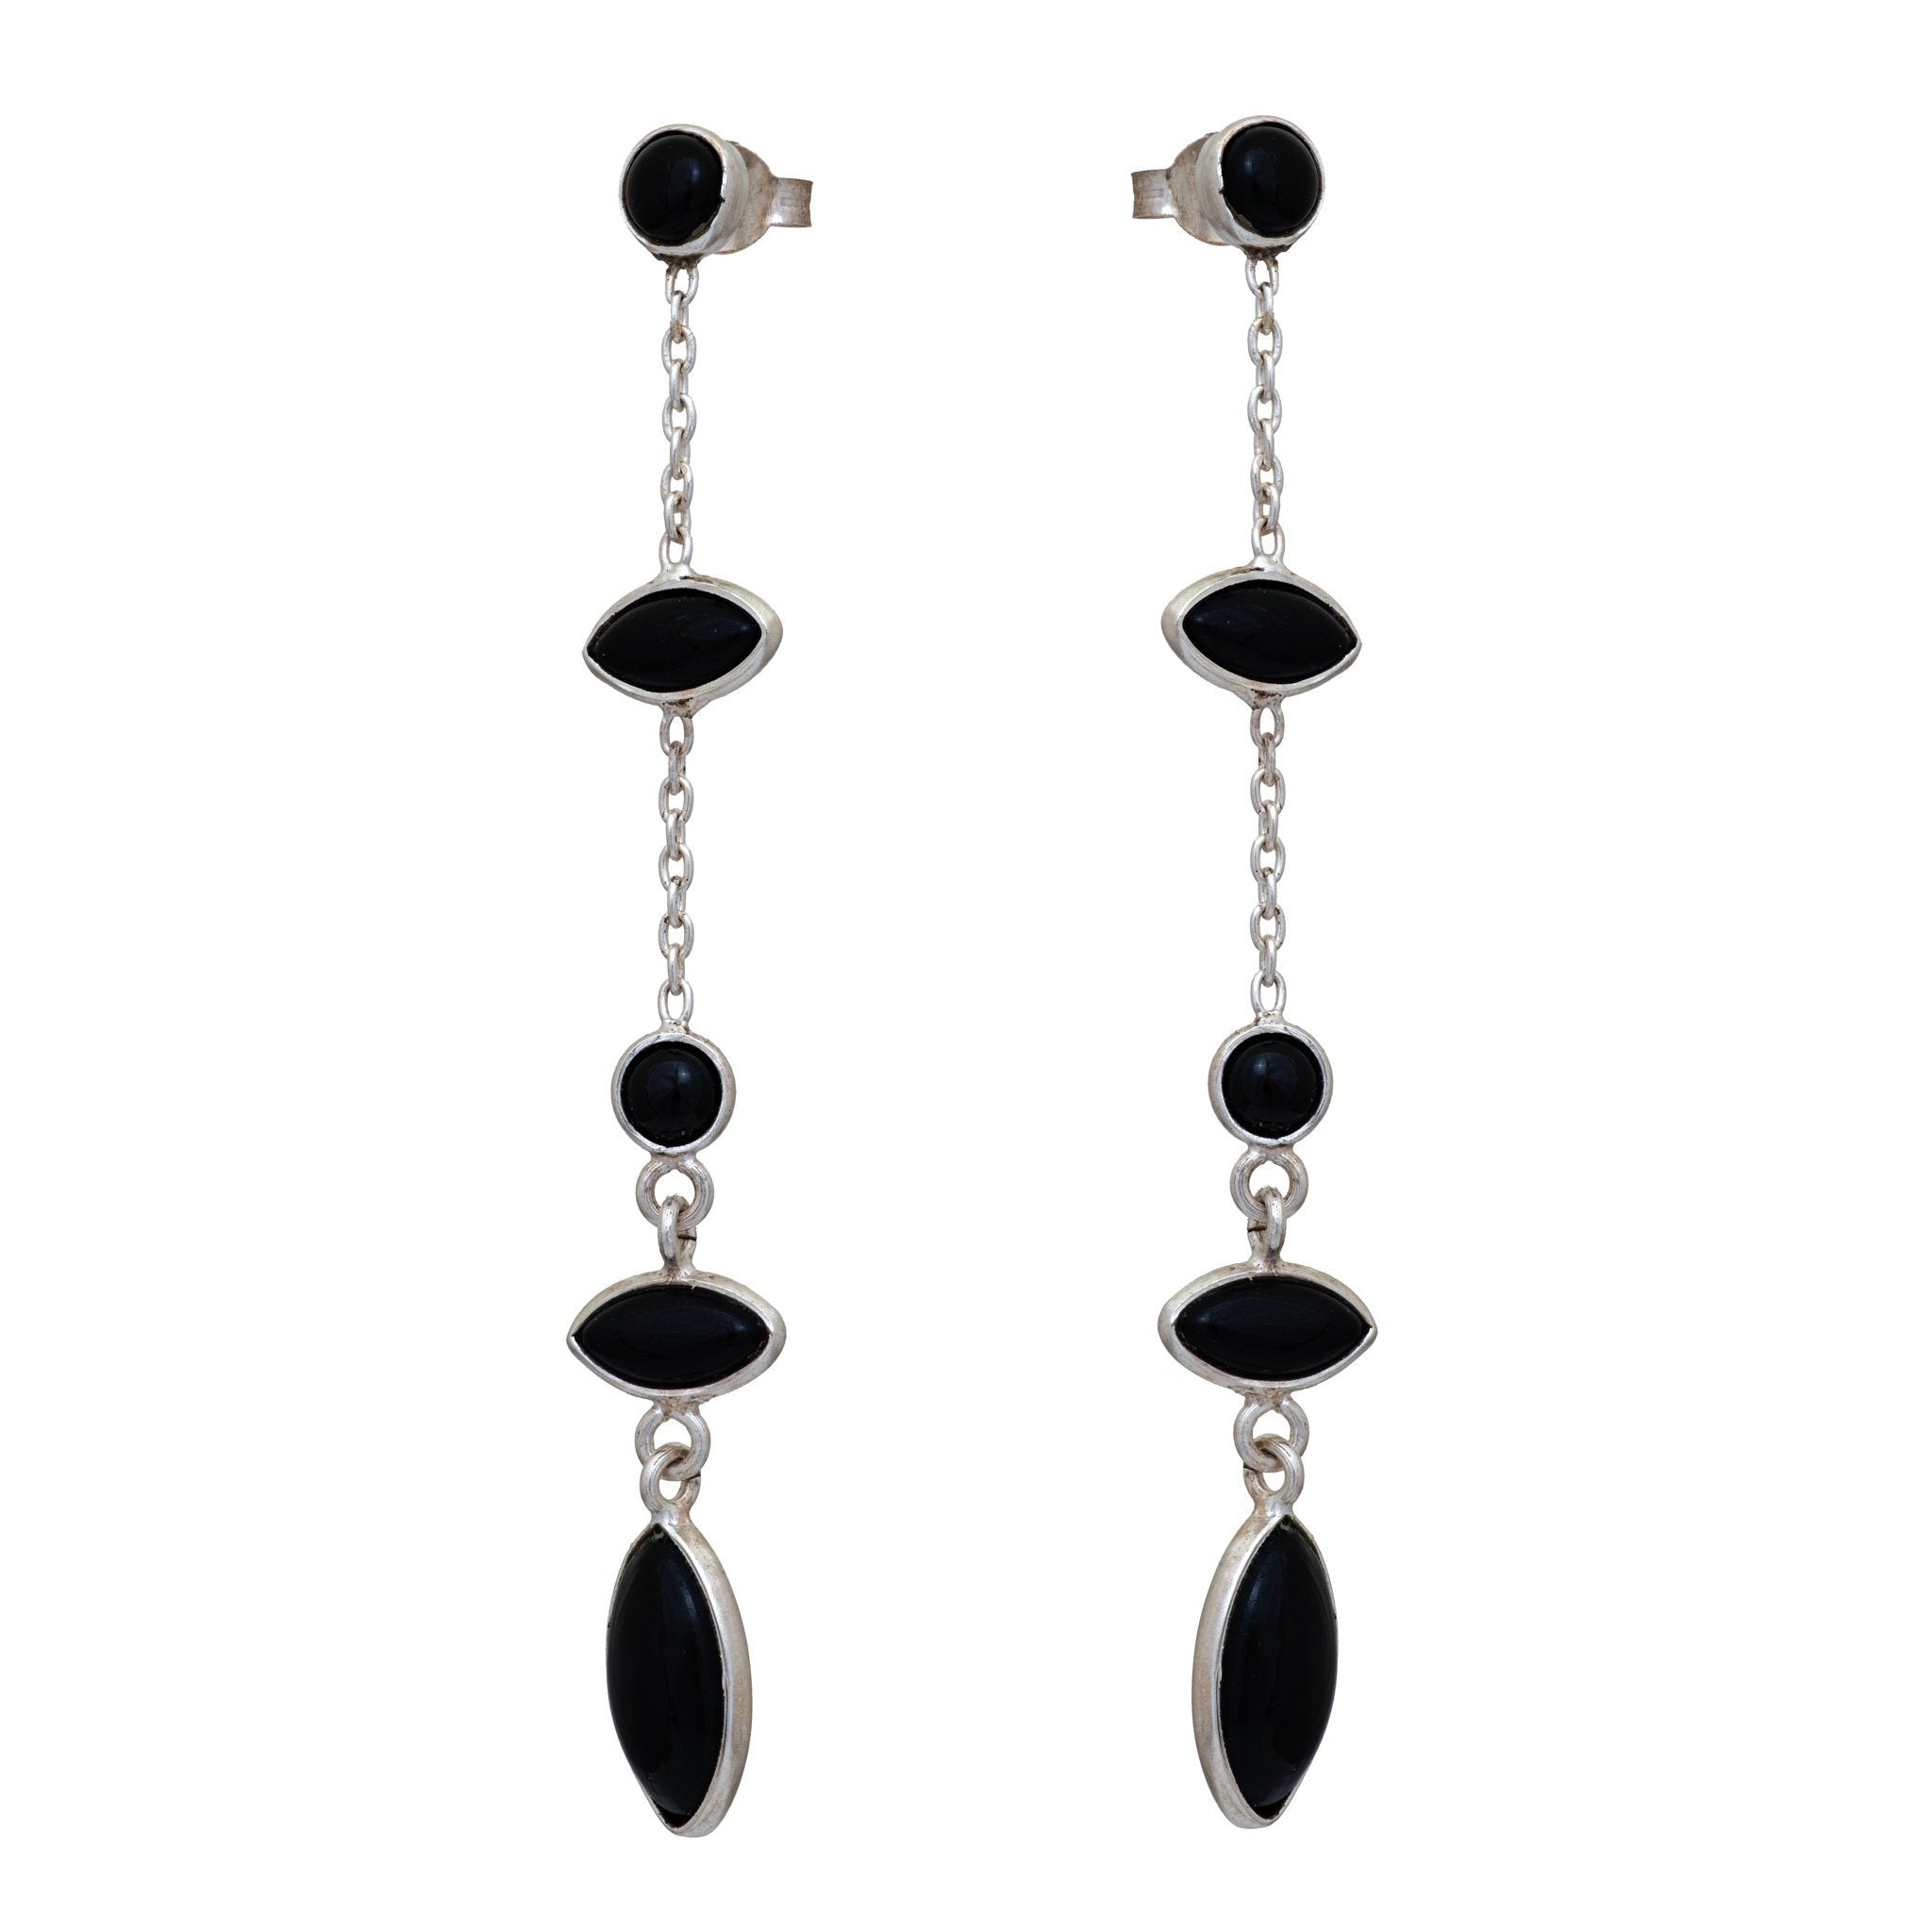 TA black onyx silver earrings